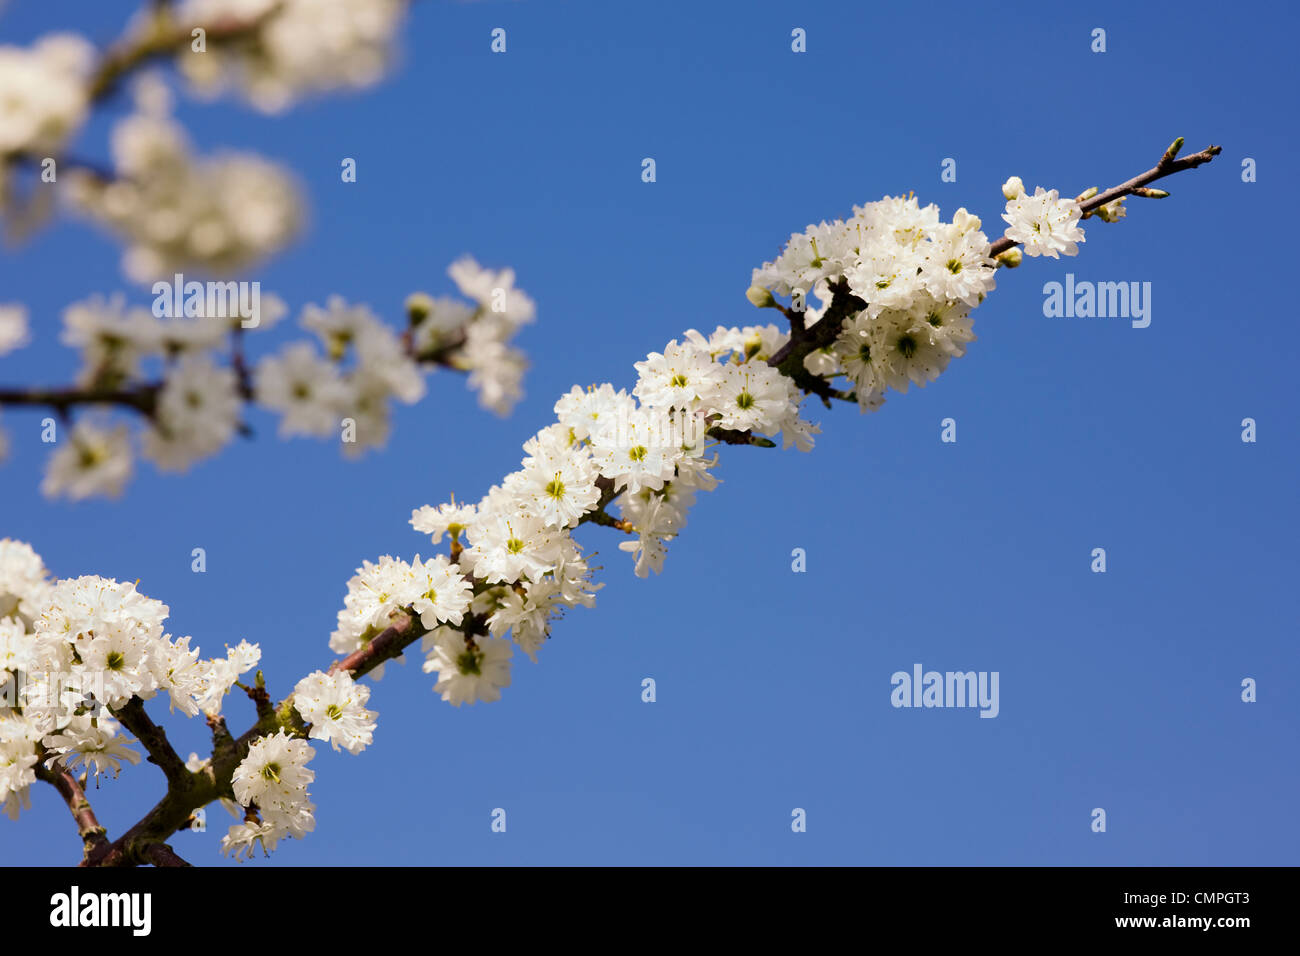 Prunus spinosa 'Plena'. Blackthorn flowers in Spring. - Stock Image